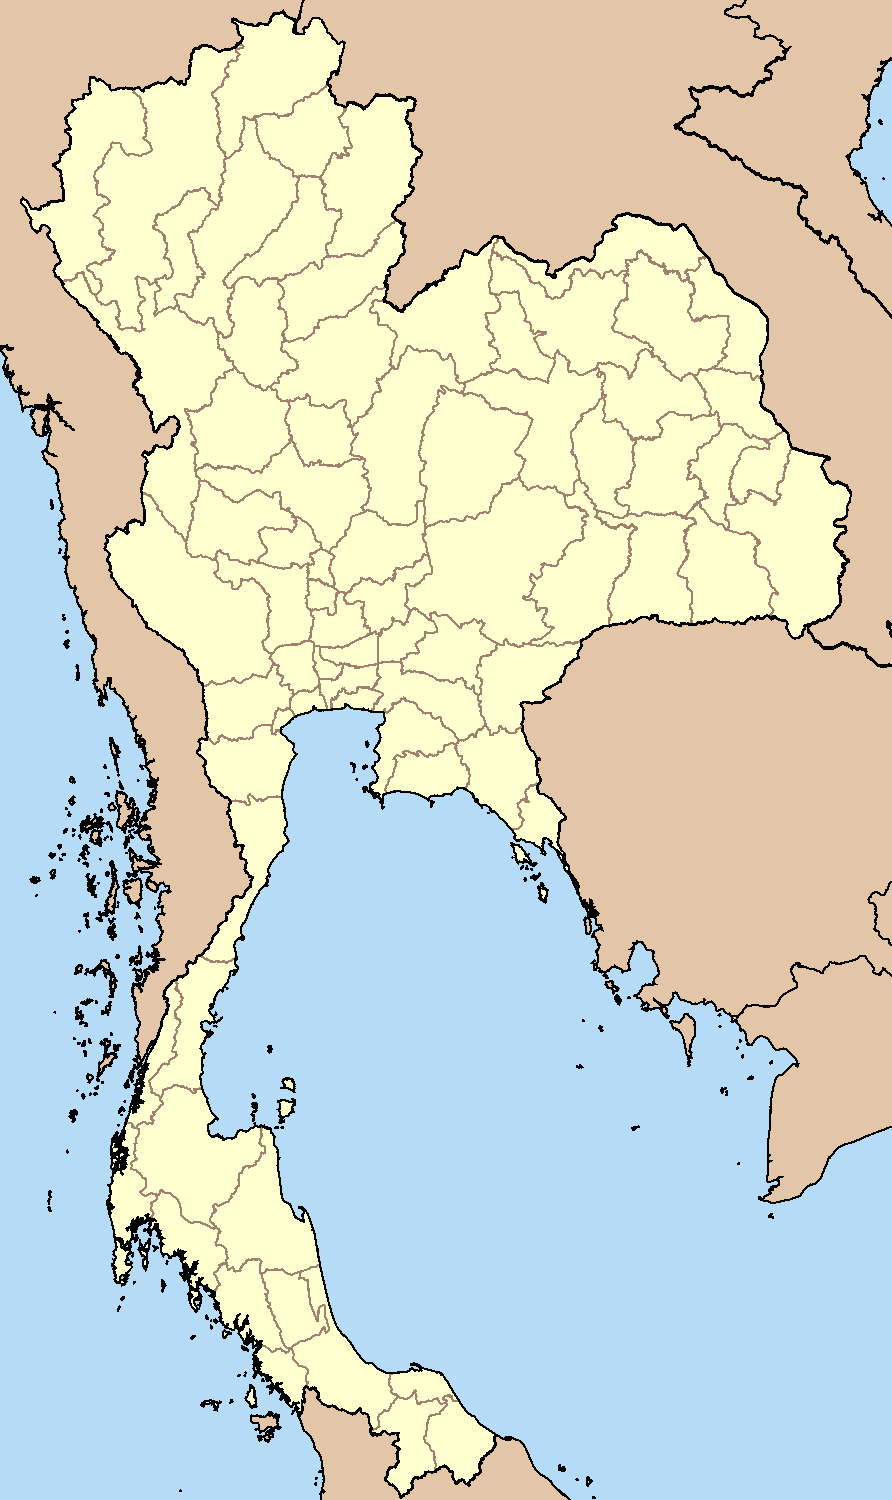 FileBlankMap Thailandpng Wikimedia Commons - Thailand blank map